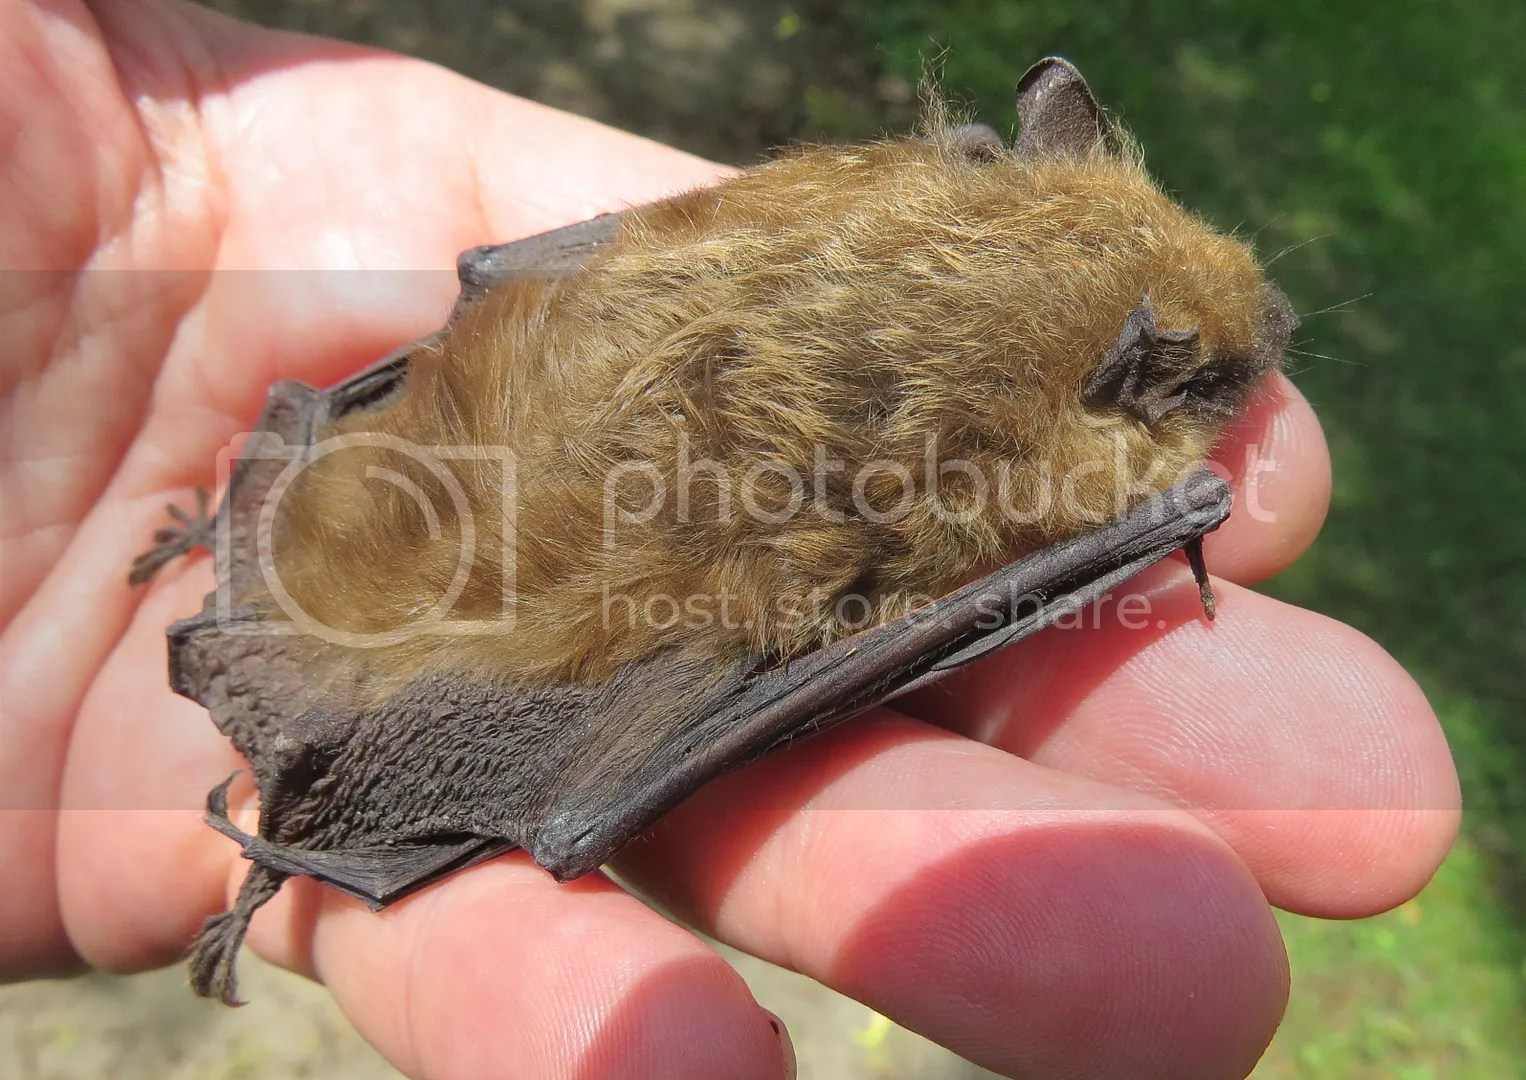 Big Brown and Dead Bat photo IMG_9270_zpsbyuezuf2.jpg